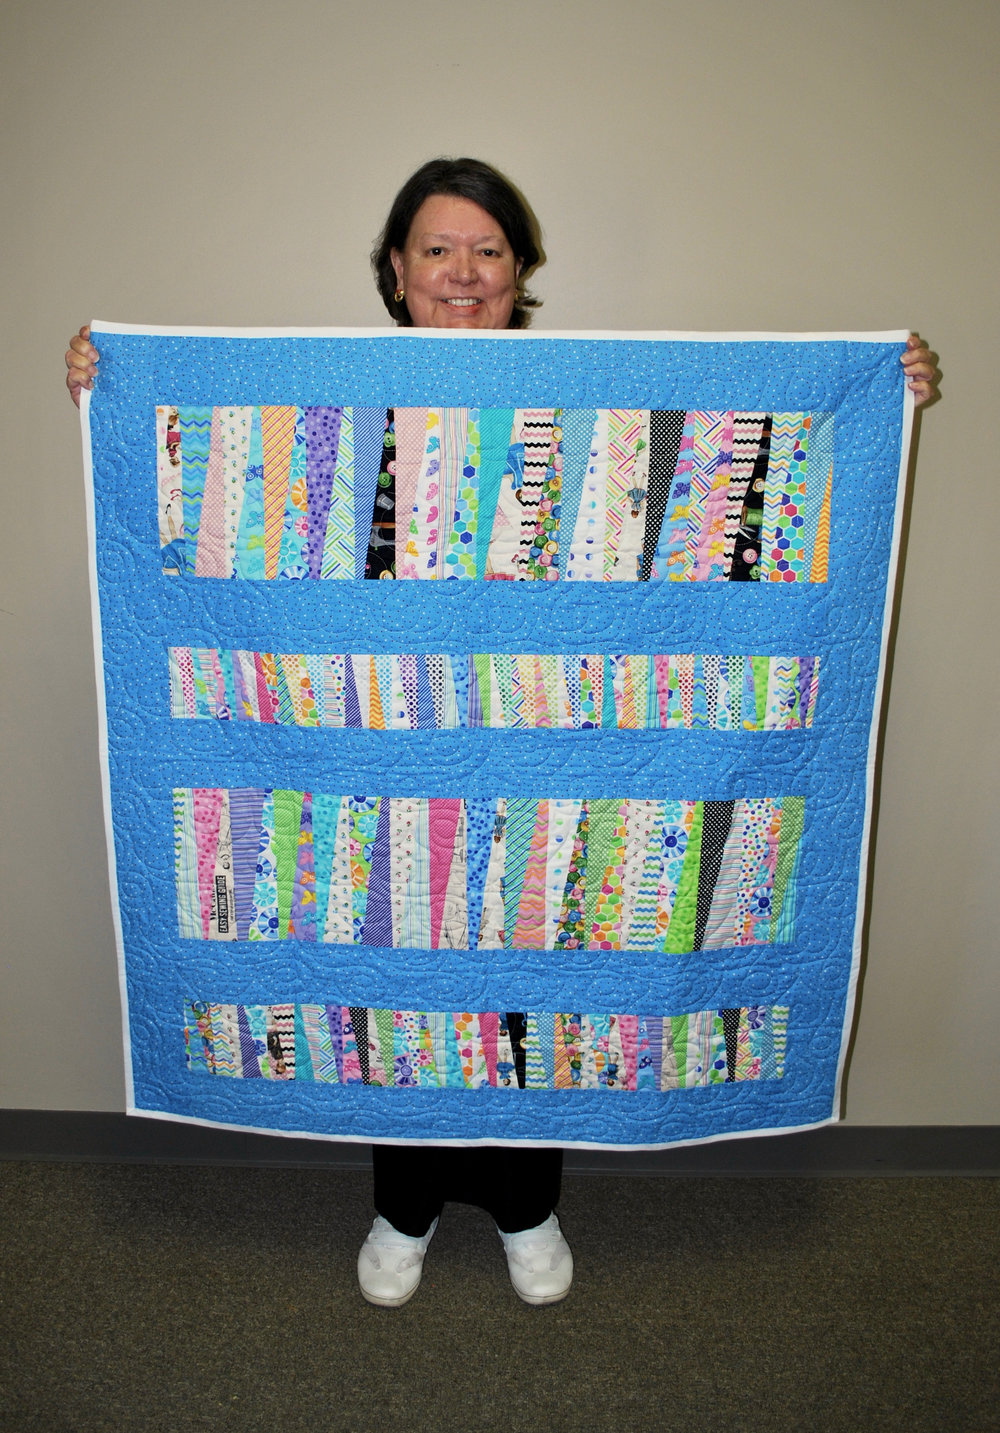 Beverly enjoyed sewing scraps together for this quilt